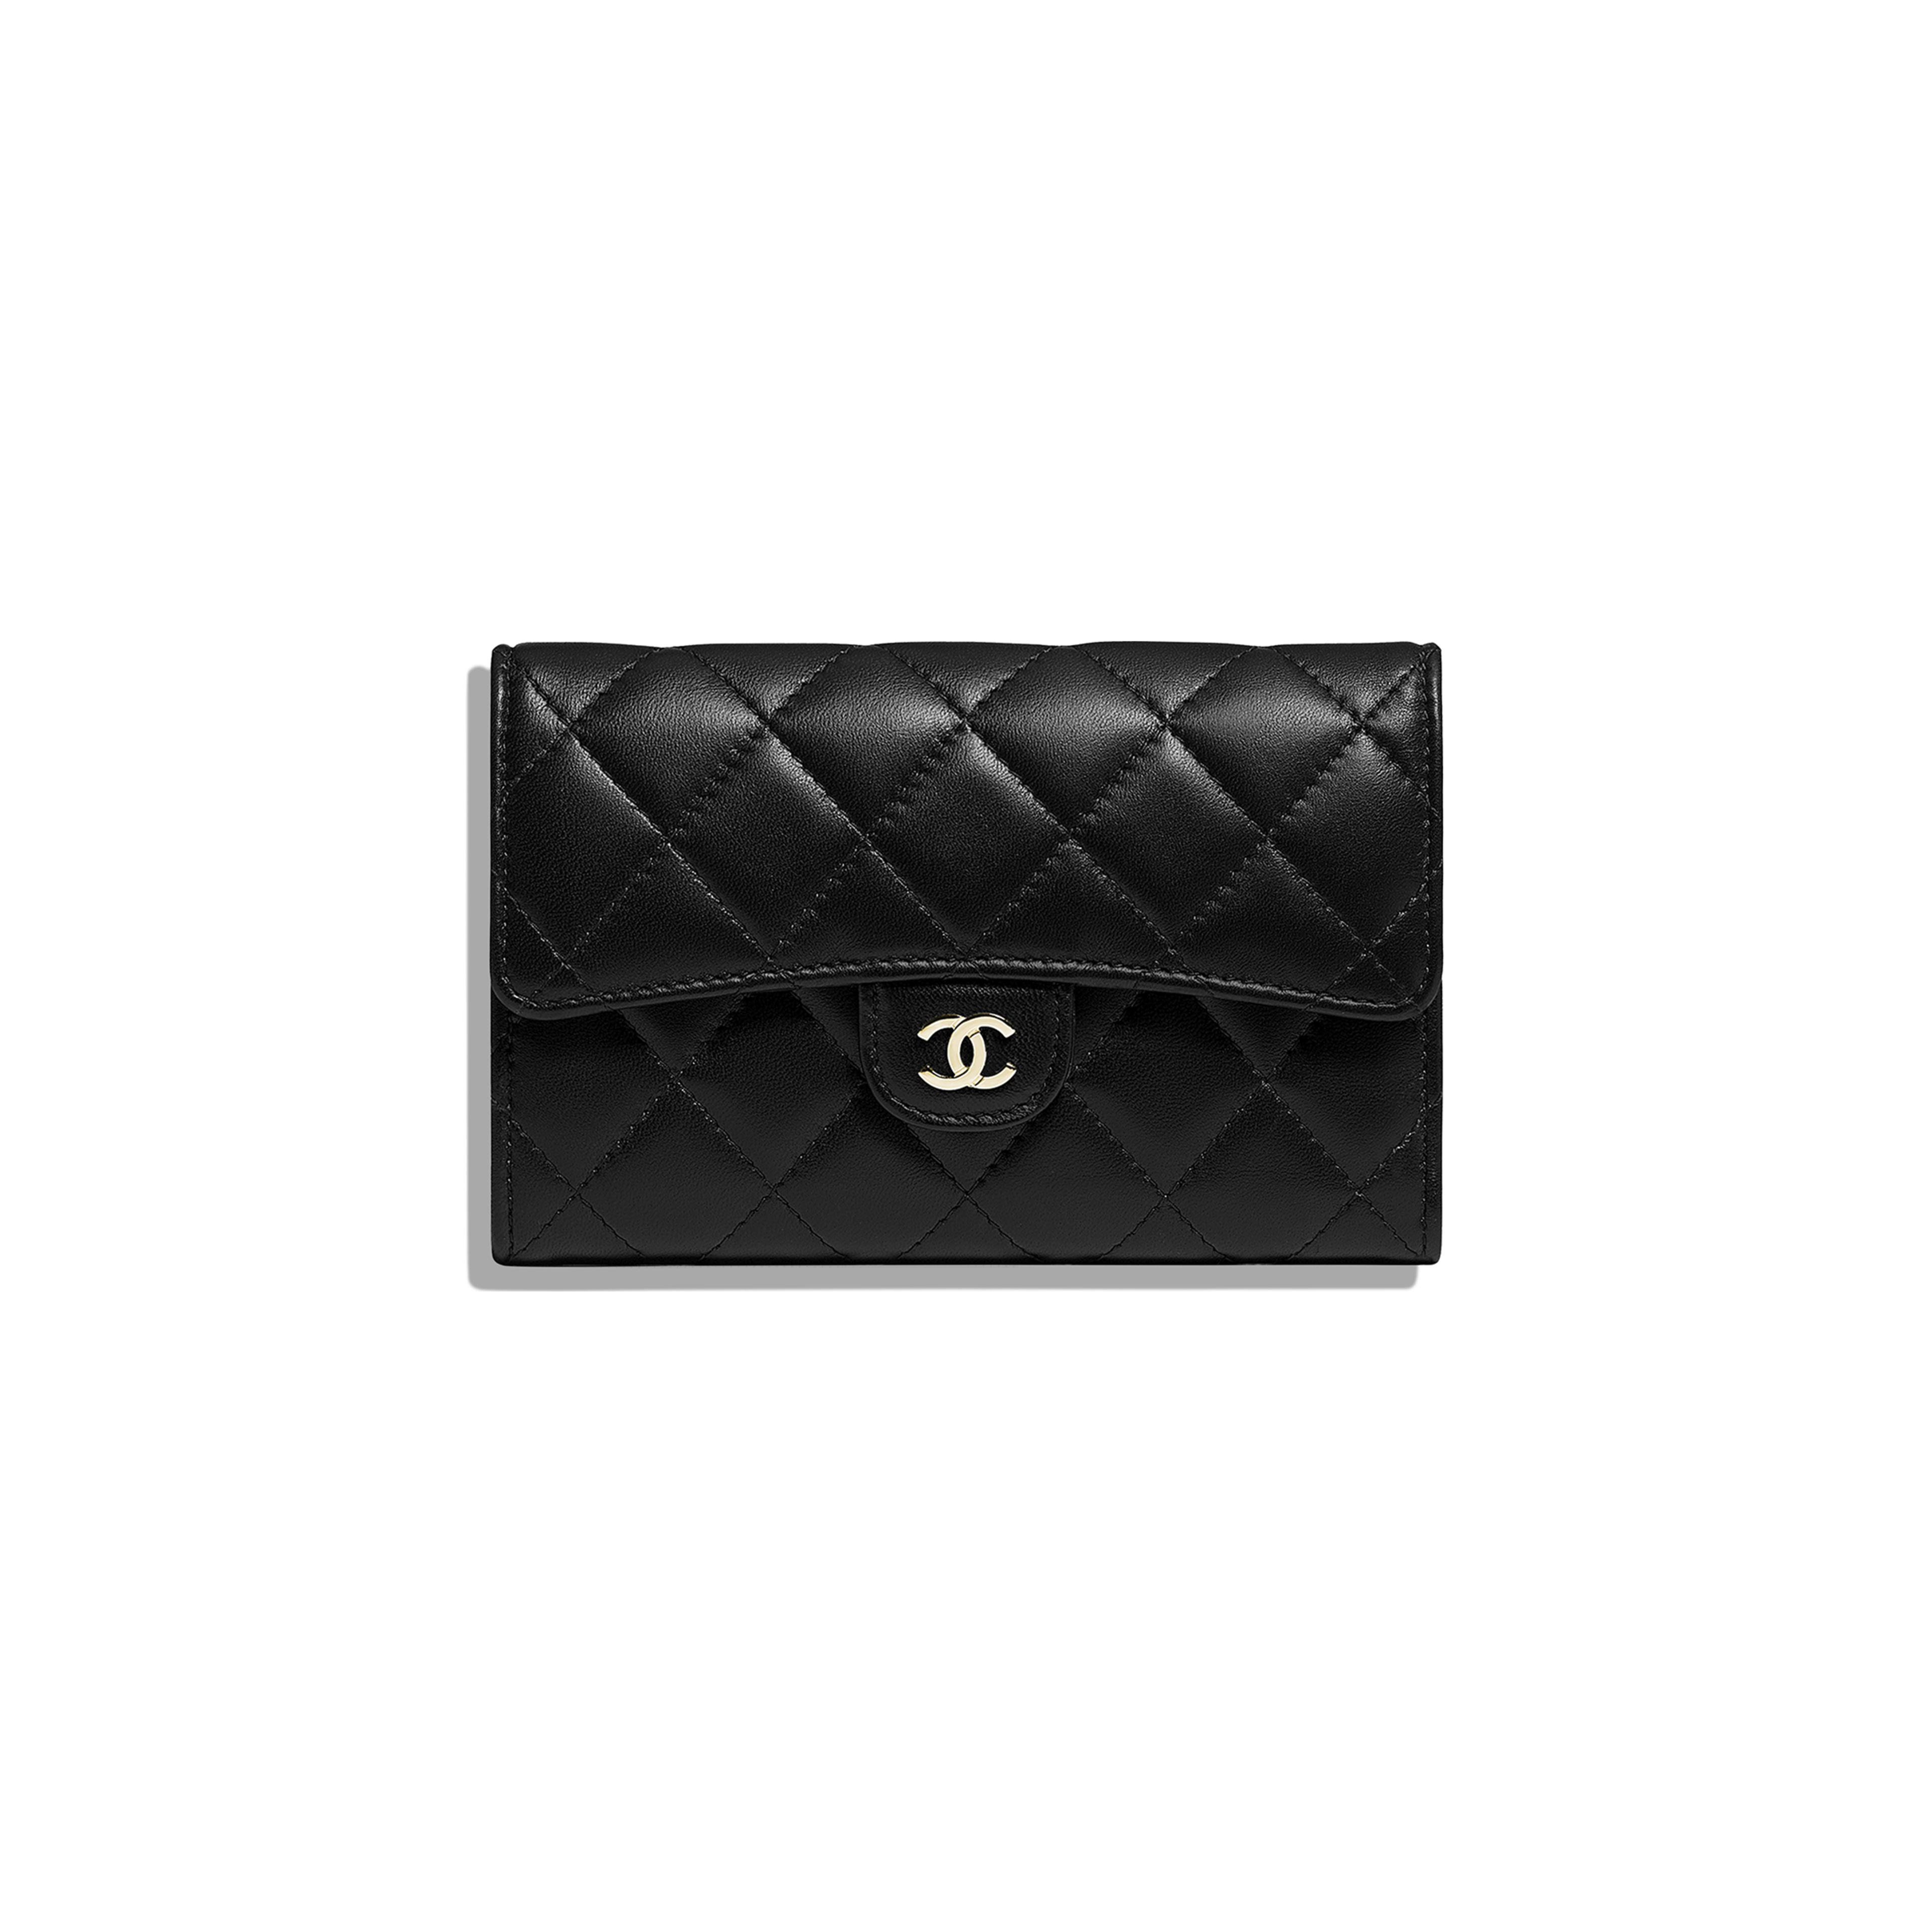 Classic Flap Wallet - Black - Lambskin - Default view - see full sized version